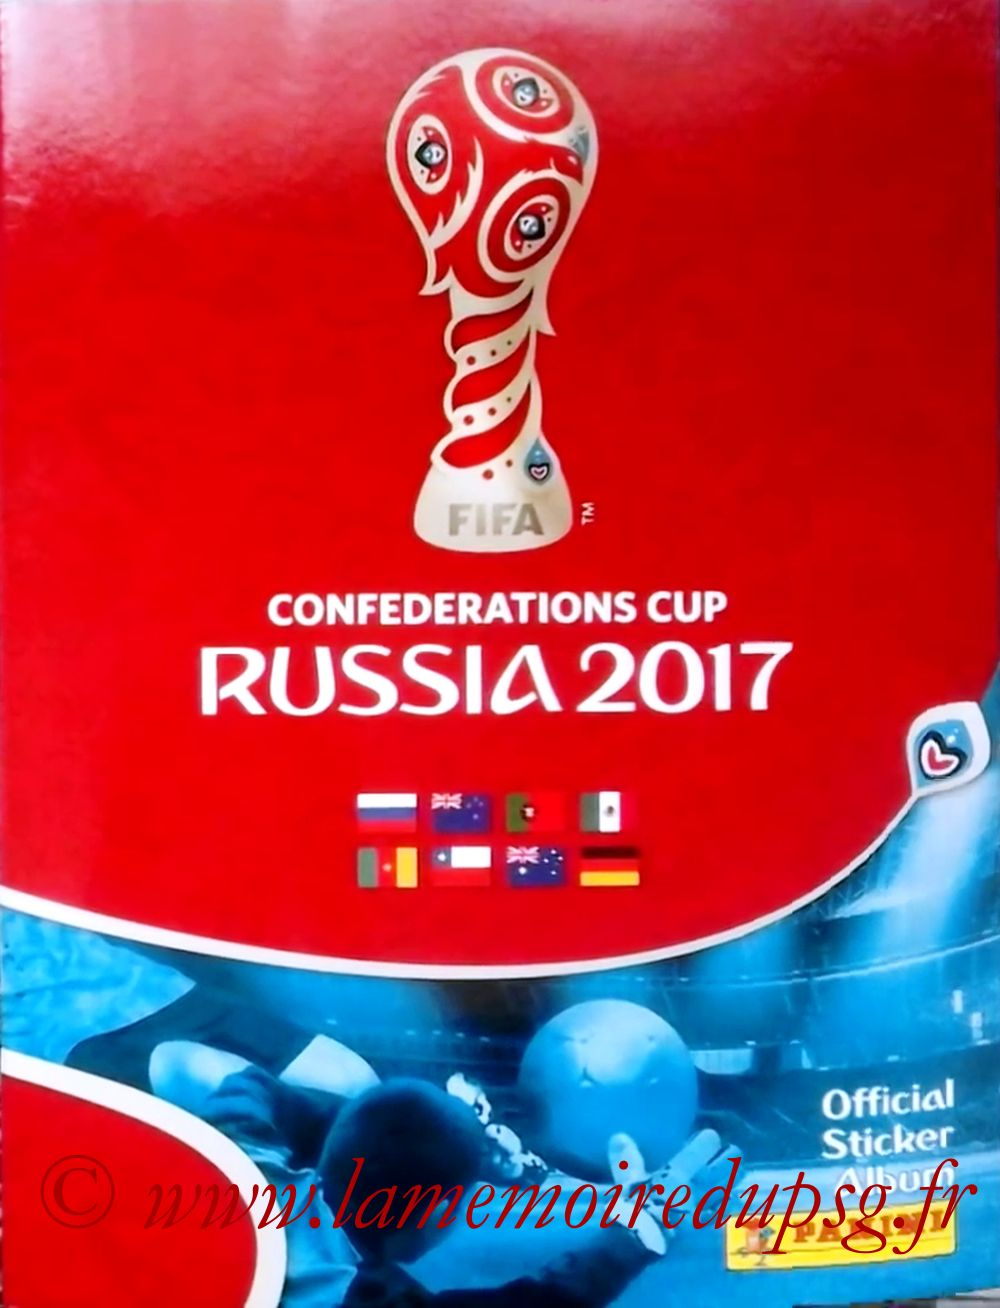 2017 - Panini Confederations Cup Russia Stickers